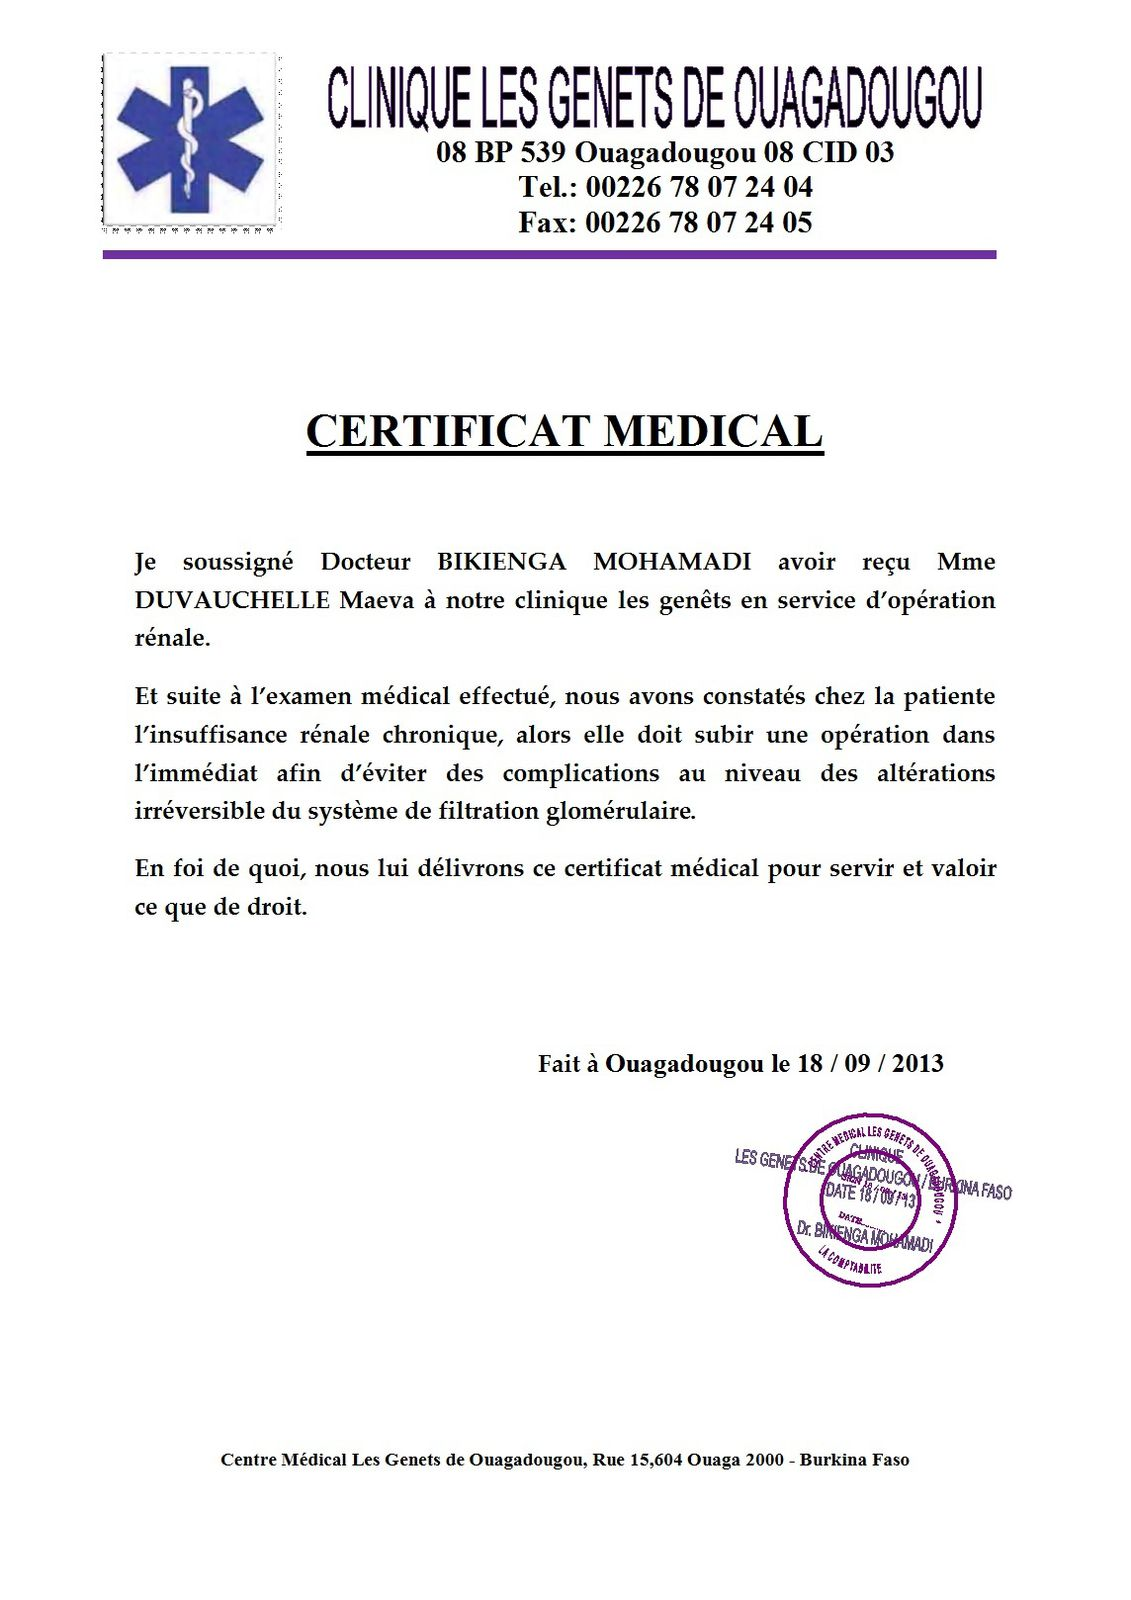 Modele certificat psychologique document online for Modele certificat de ramonage gratuit